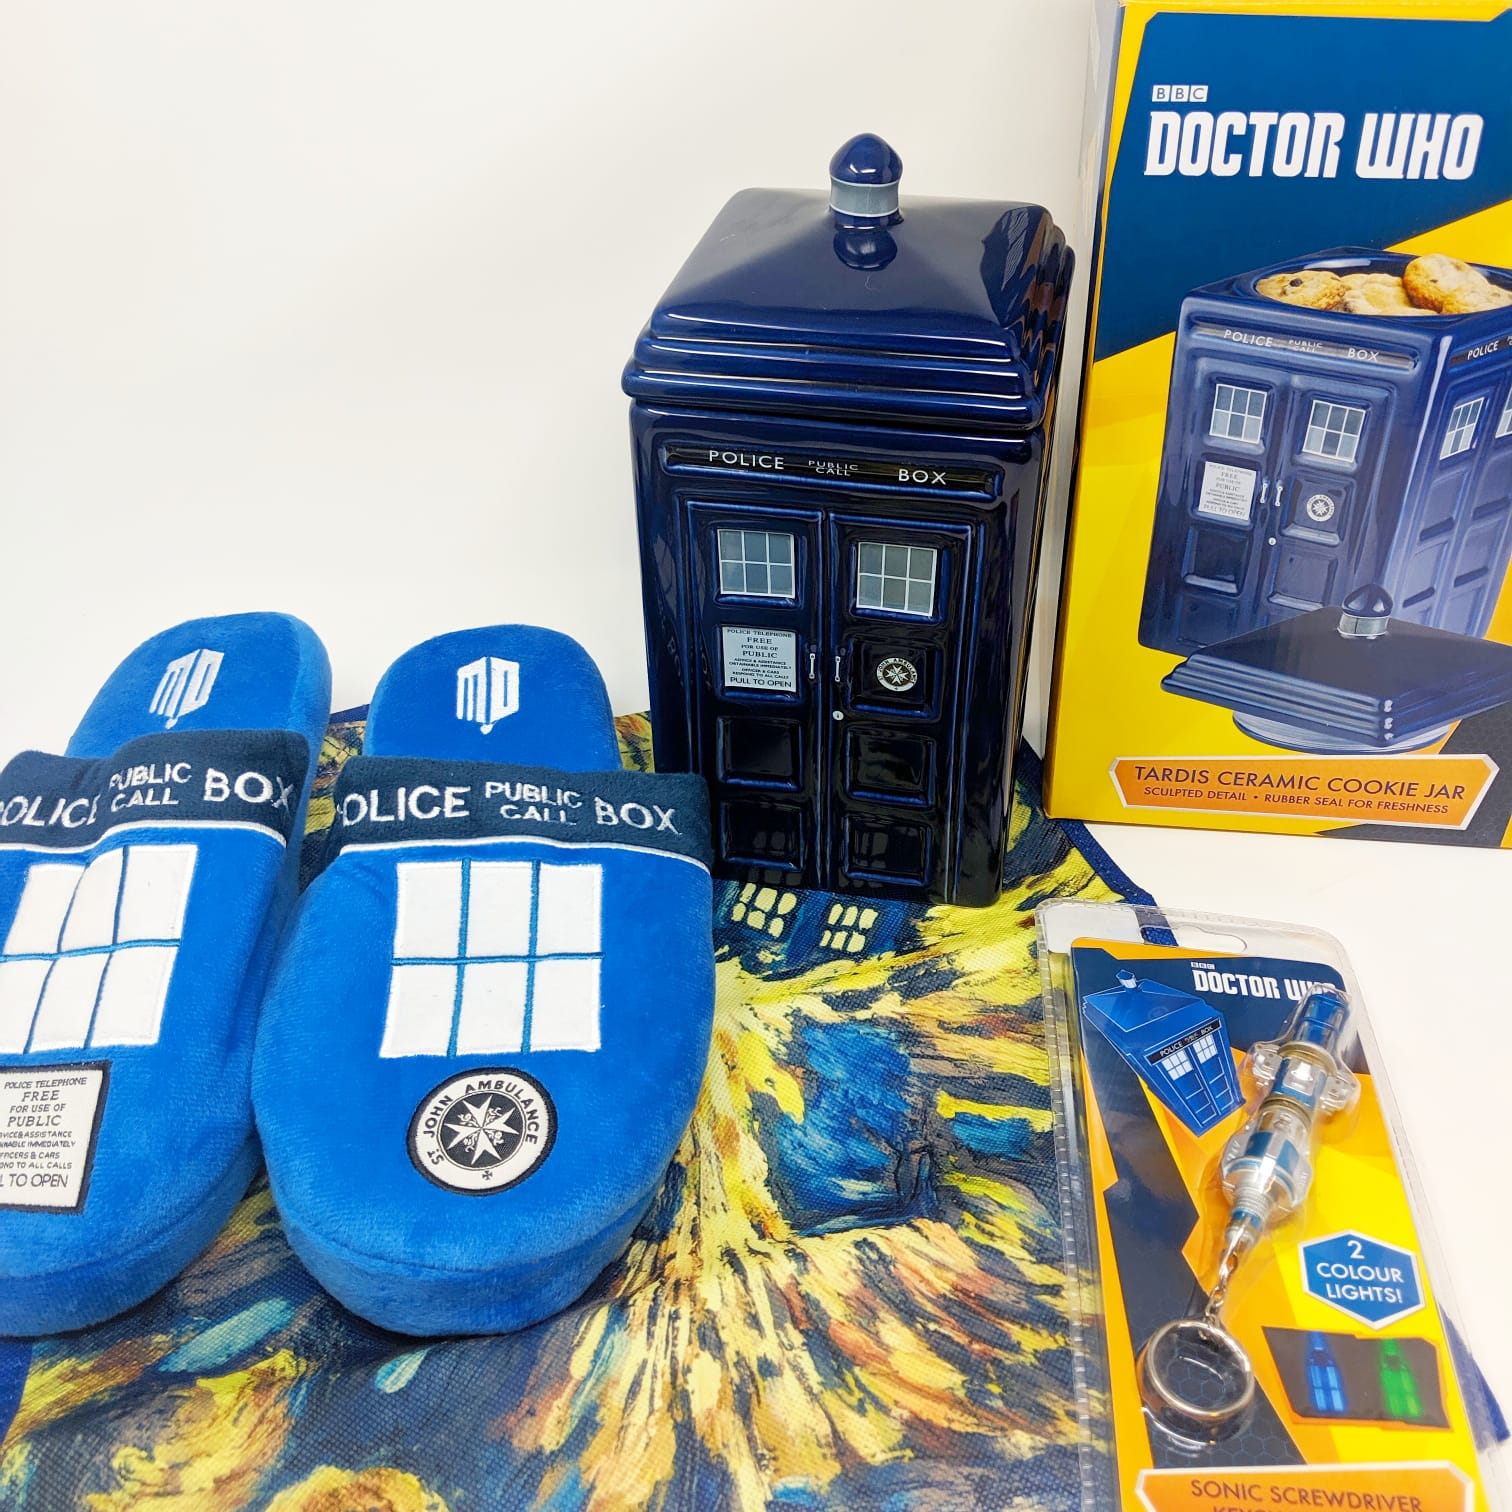 Doctor Who Gift Collection available at RetroStyler.com